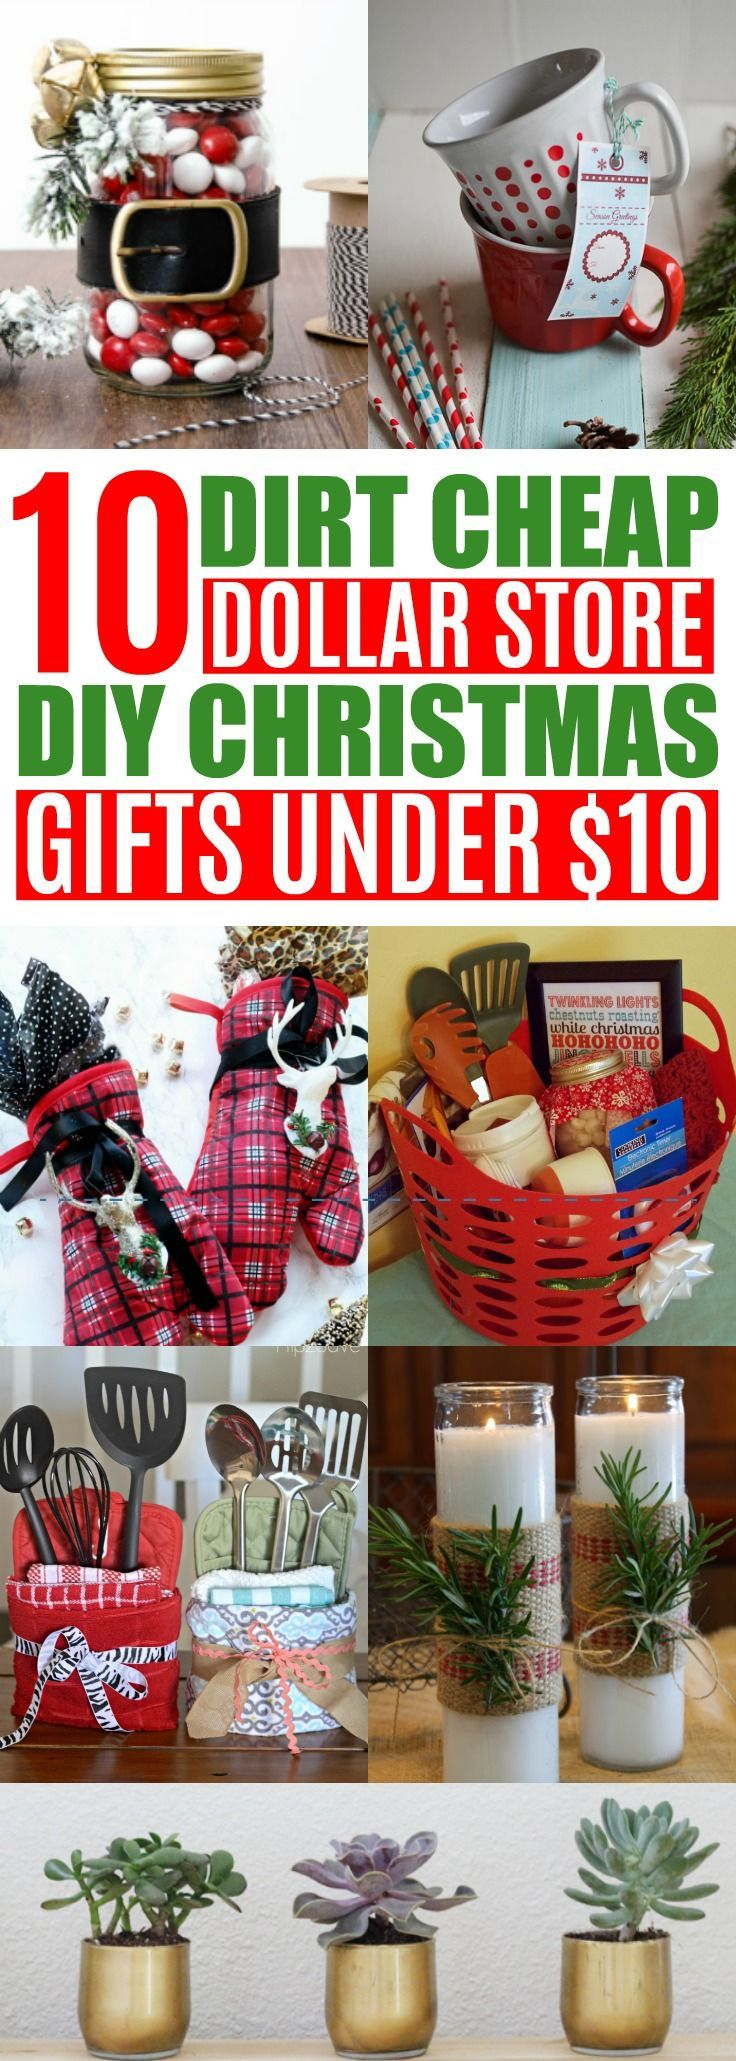 501 decorating ideas under 100 - 10 Diy Cheap Christmas Gift Ideas From The Dollar Store Under 10